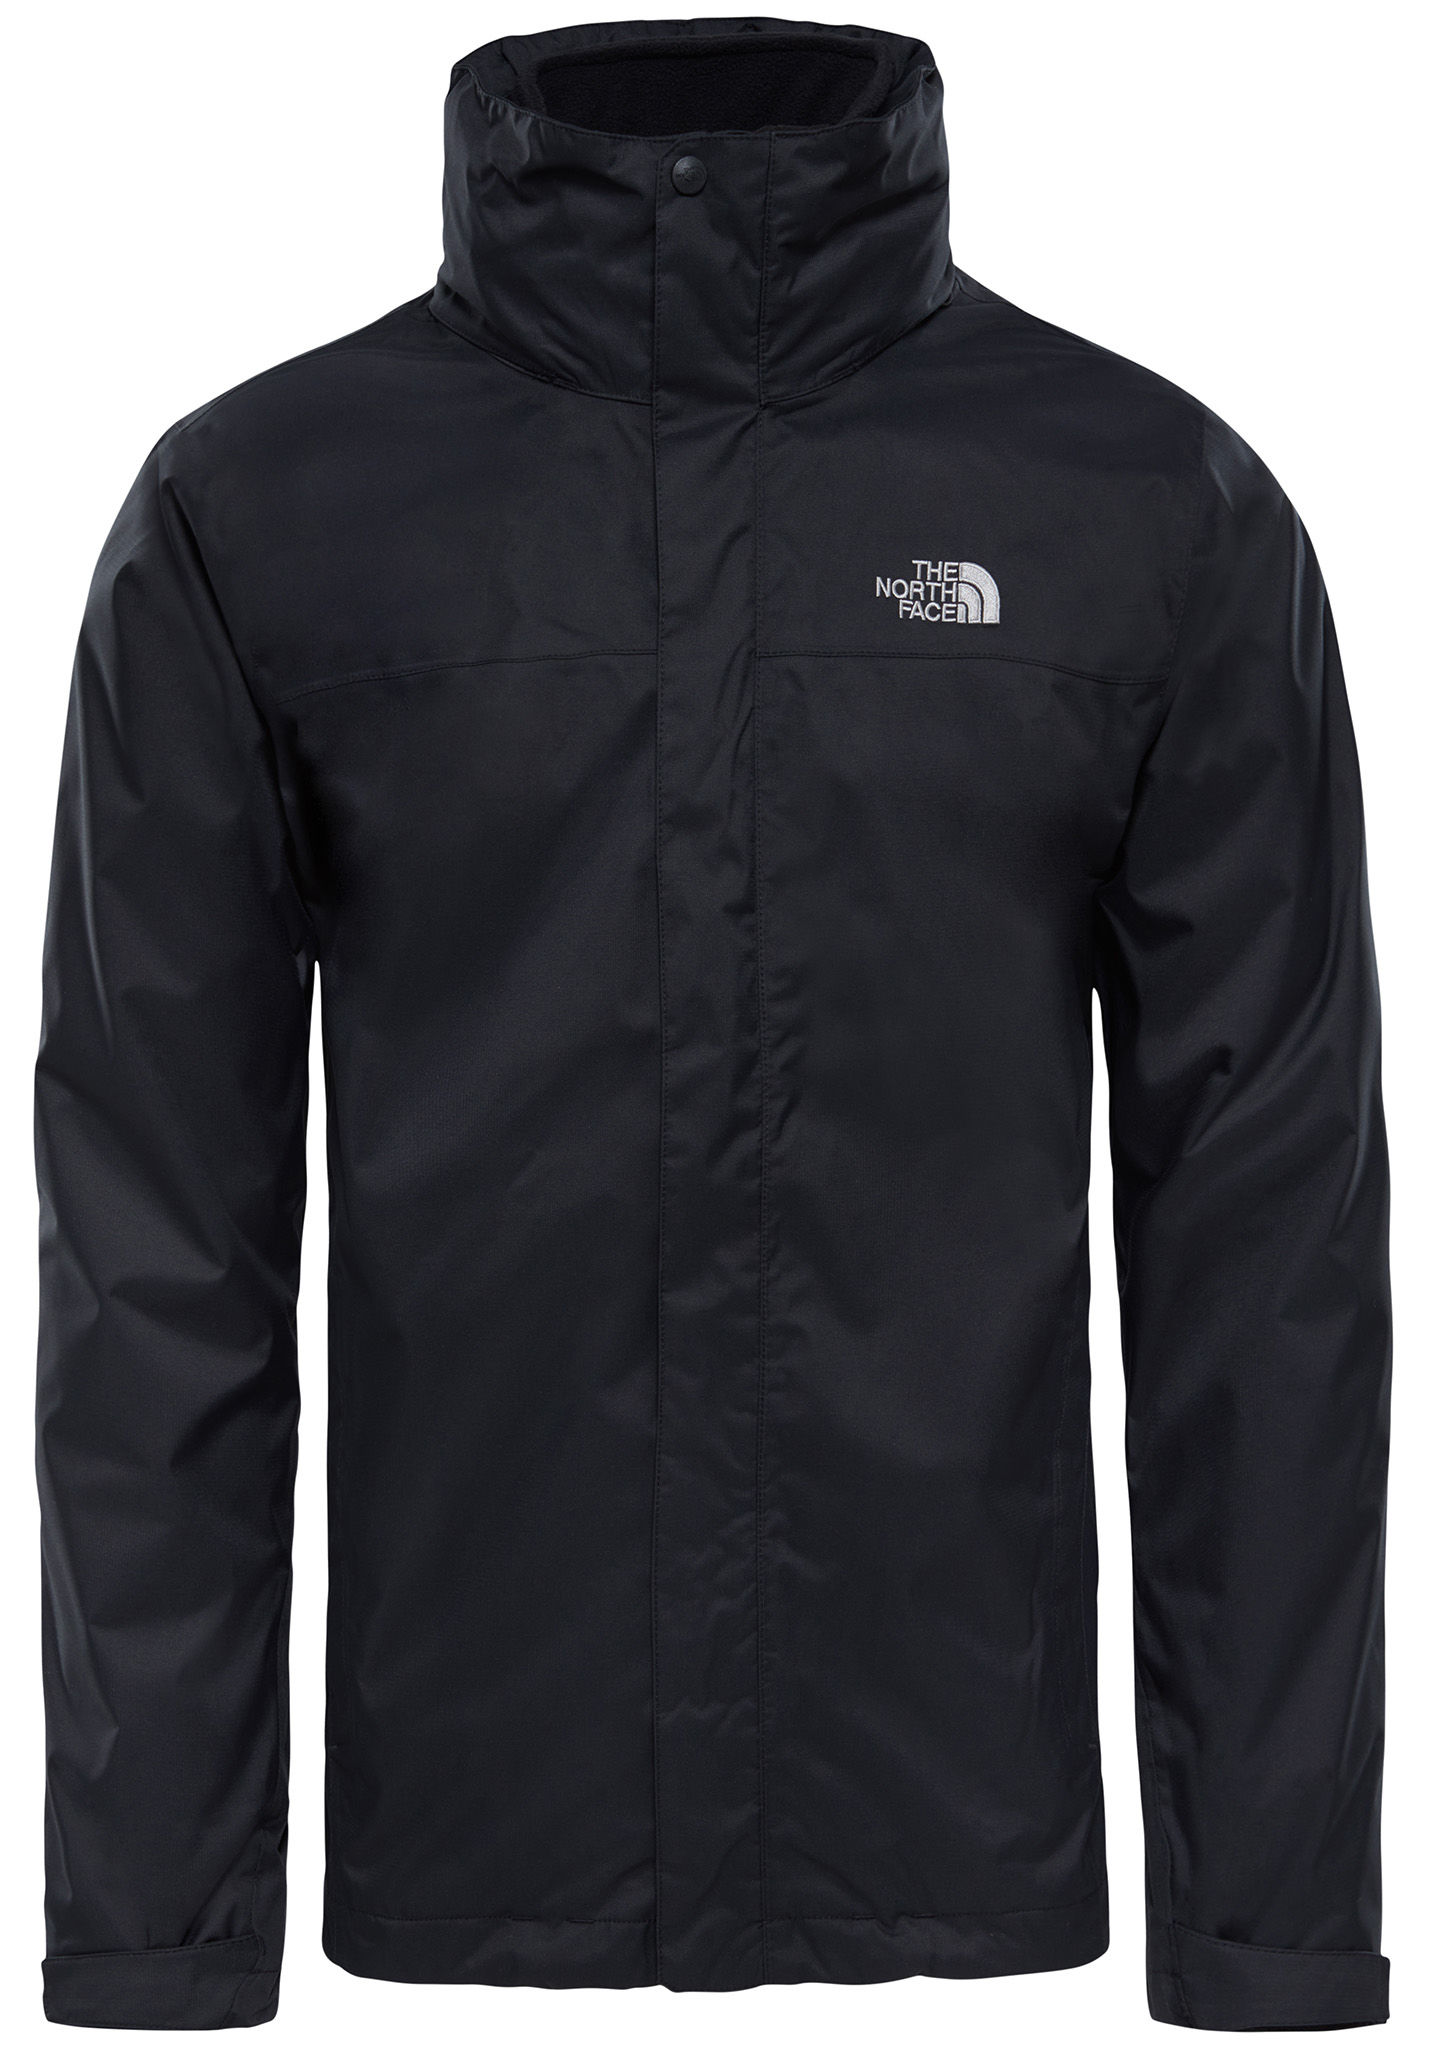 reputable site 8081c 50ac6 THE NORTH FACE Evolve II Triclimate - Funktionsjacke für Herren - Schwarz